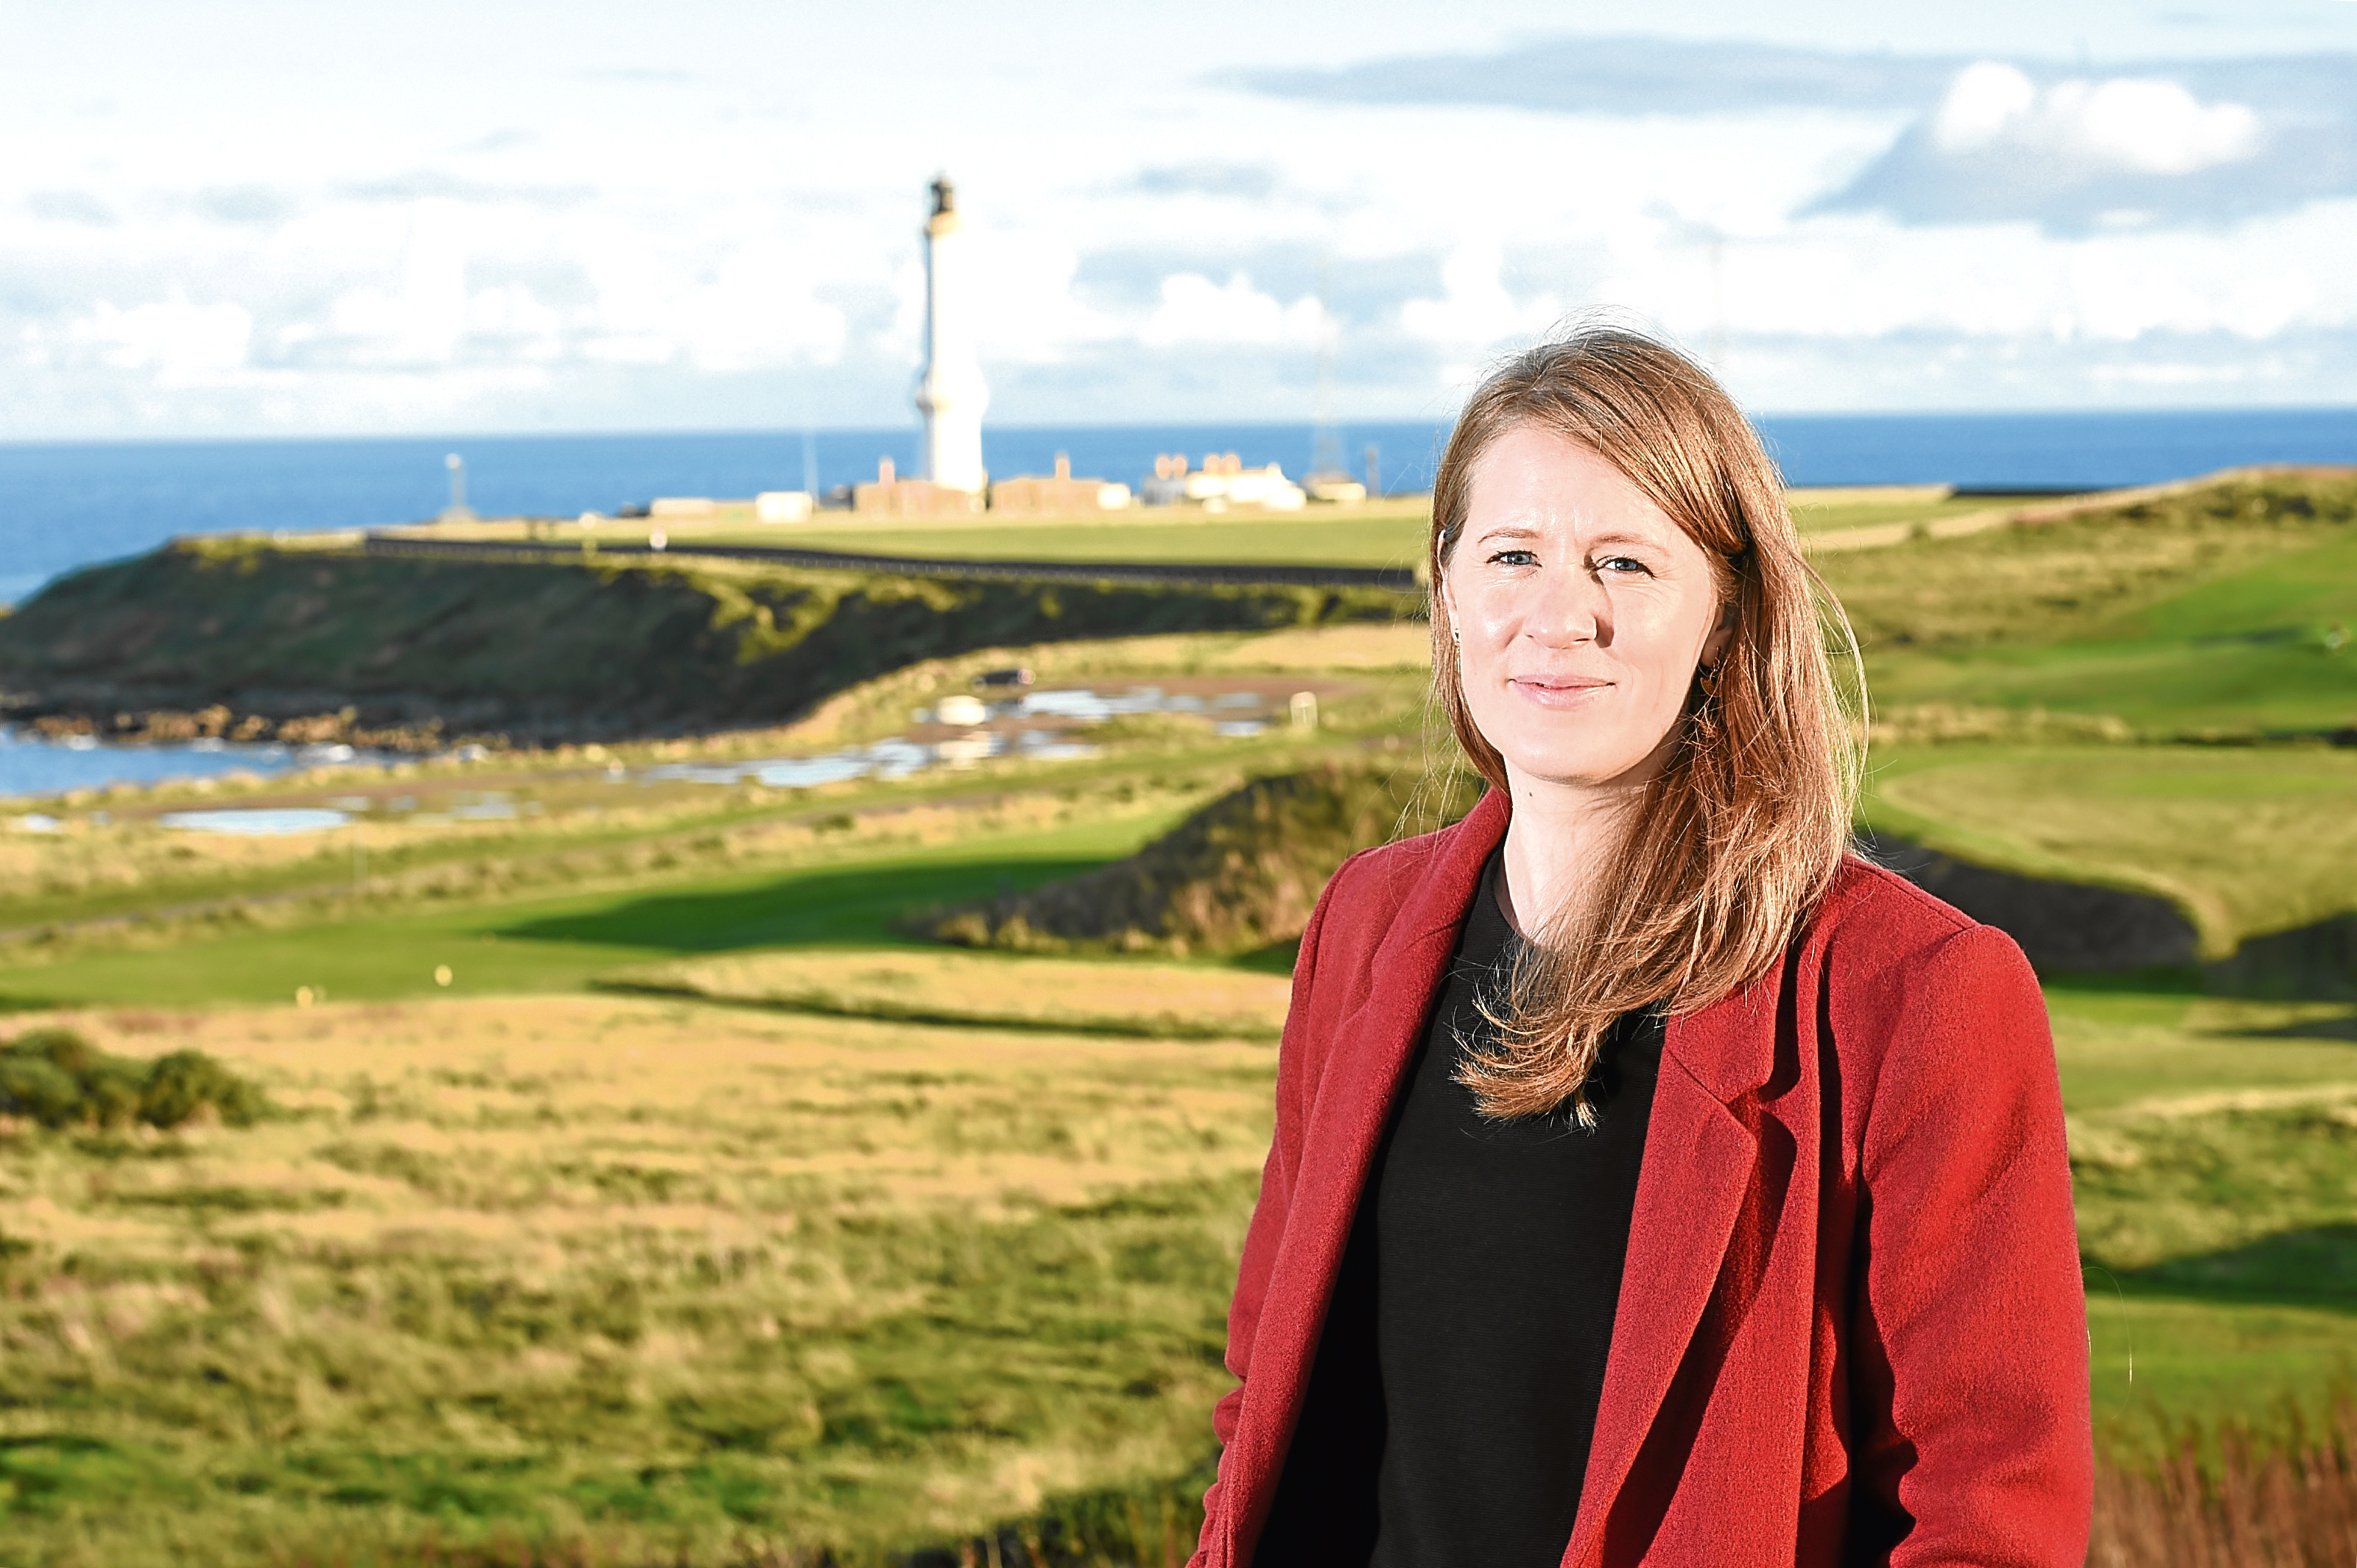 Fiona McIntyre, director of Greyhope Bay project, at the site in Nigg where they hope to develop a £10m visitors centre and marine education centre.